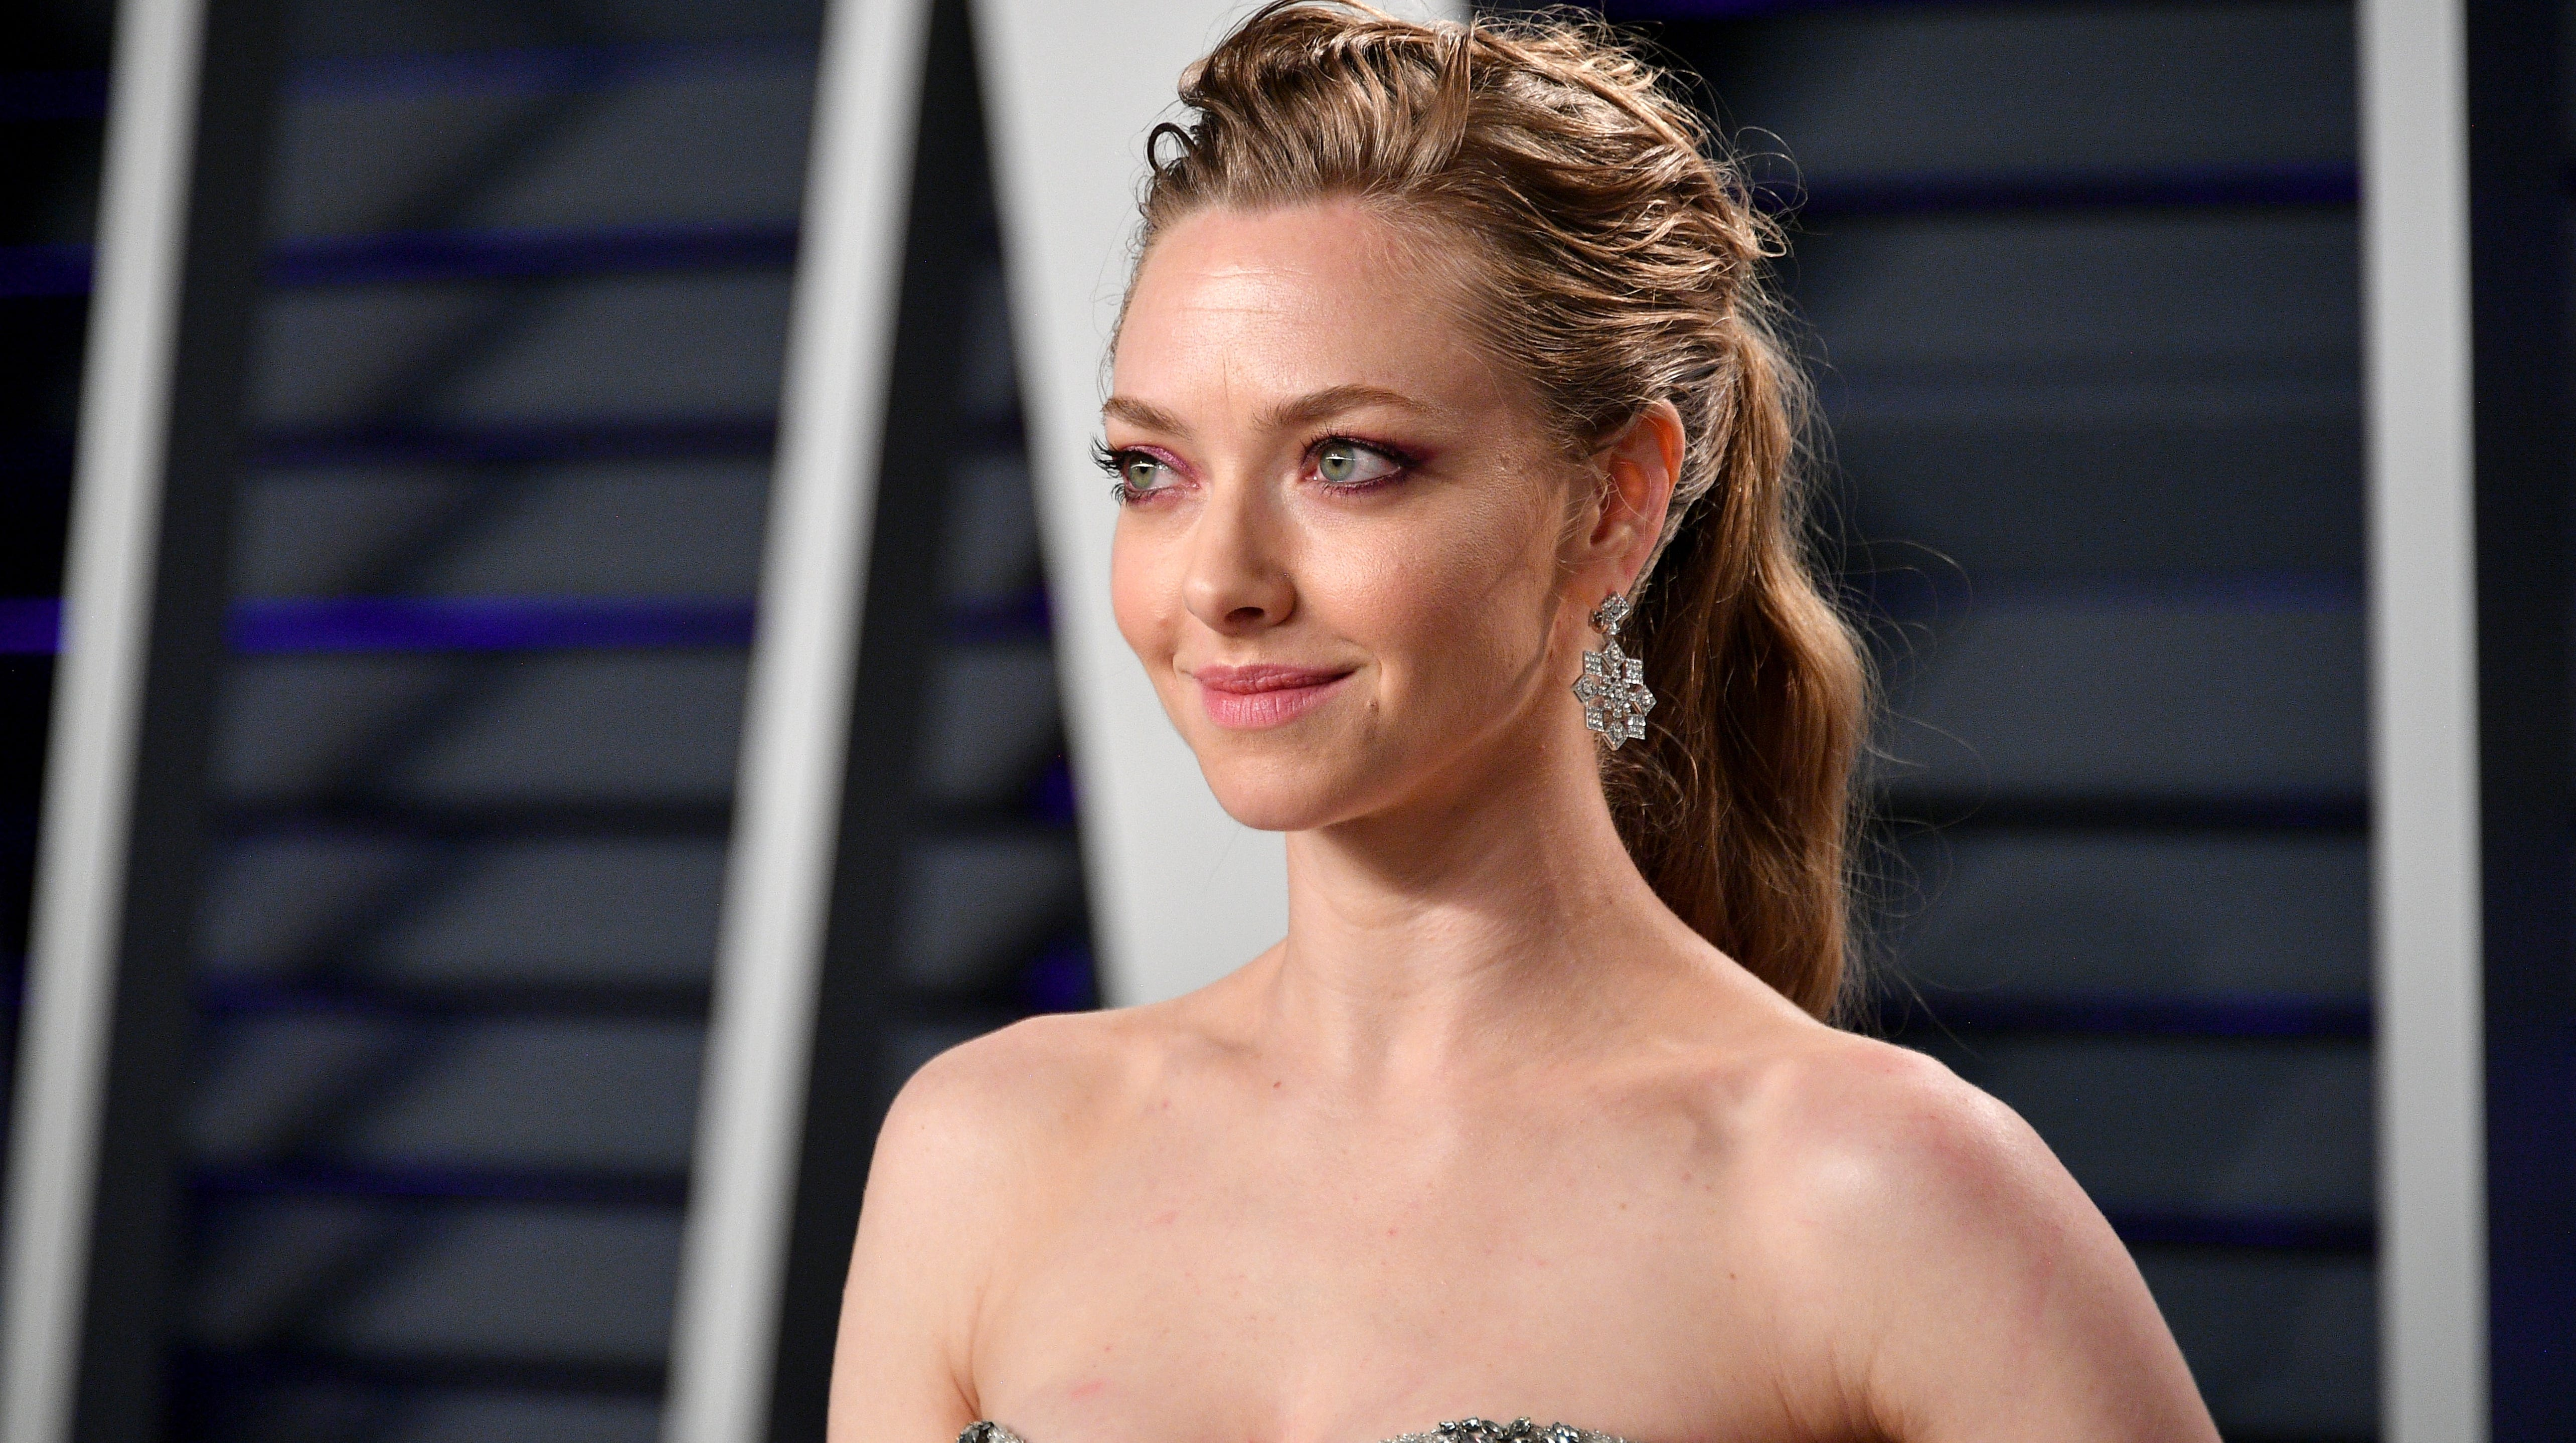 Amanda Seyfried says motherhood made her rethink taking roles with 'nudity or sex'